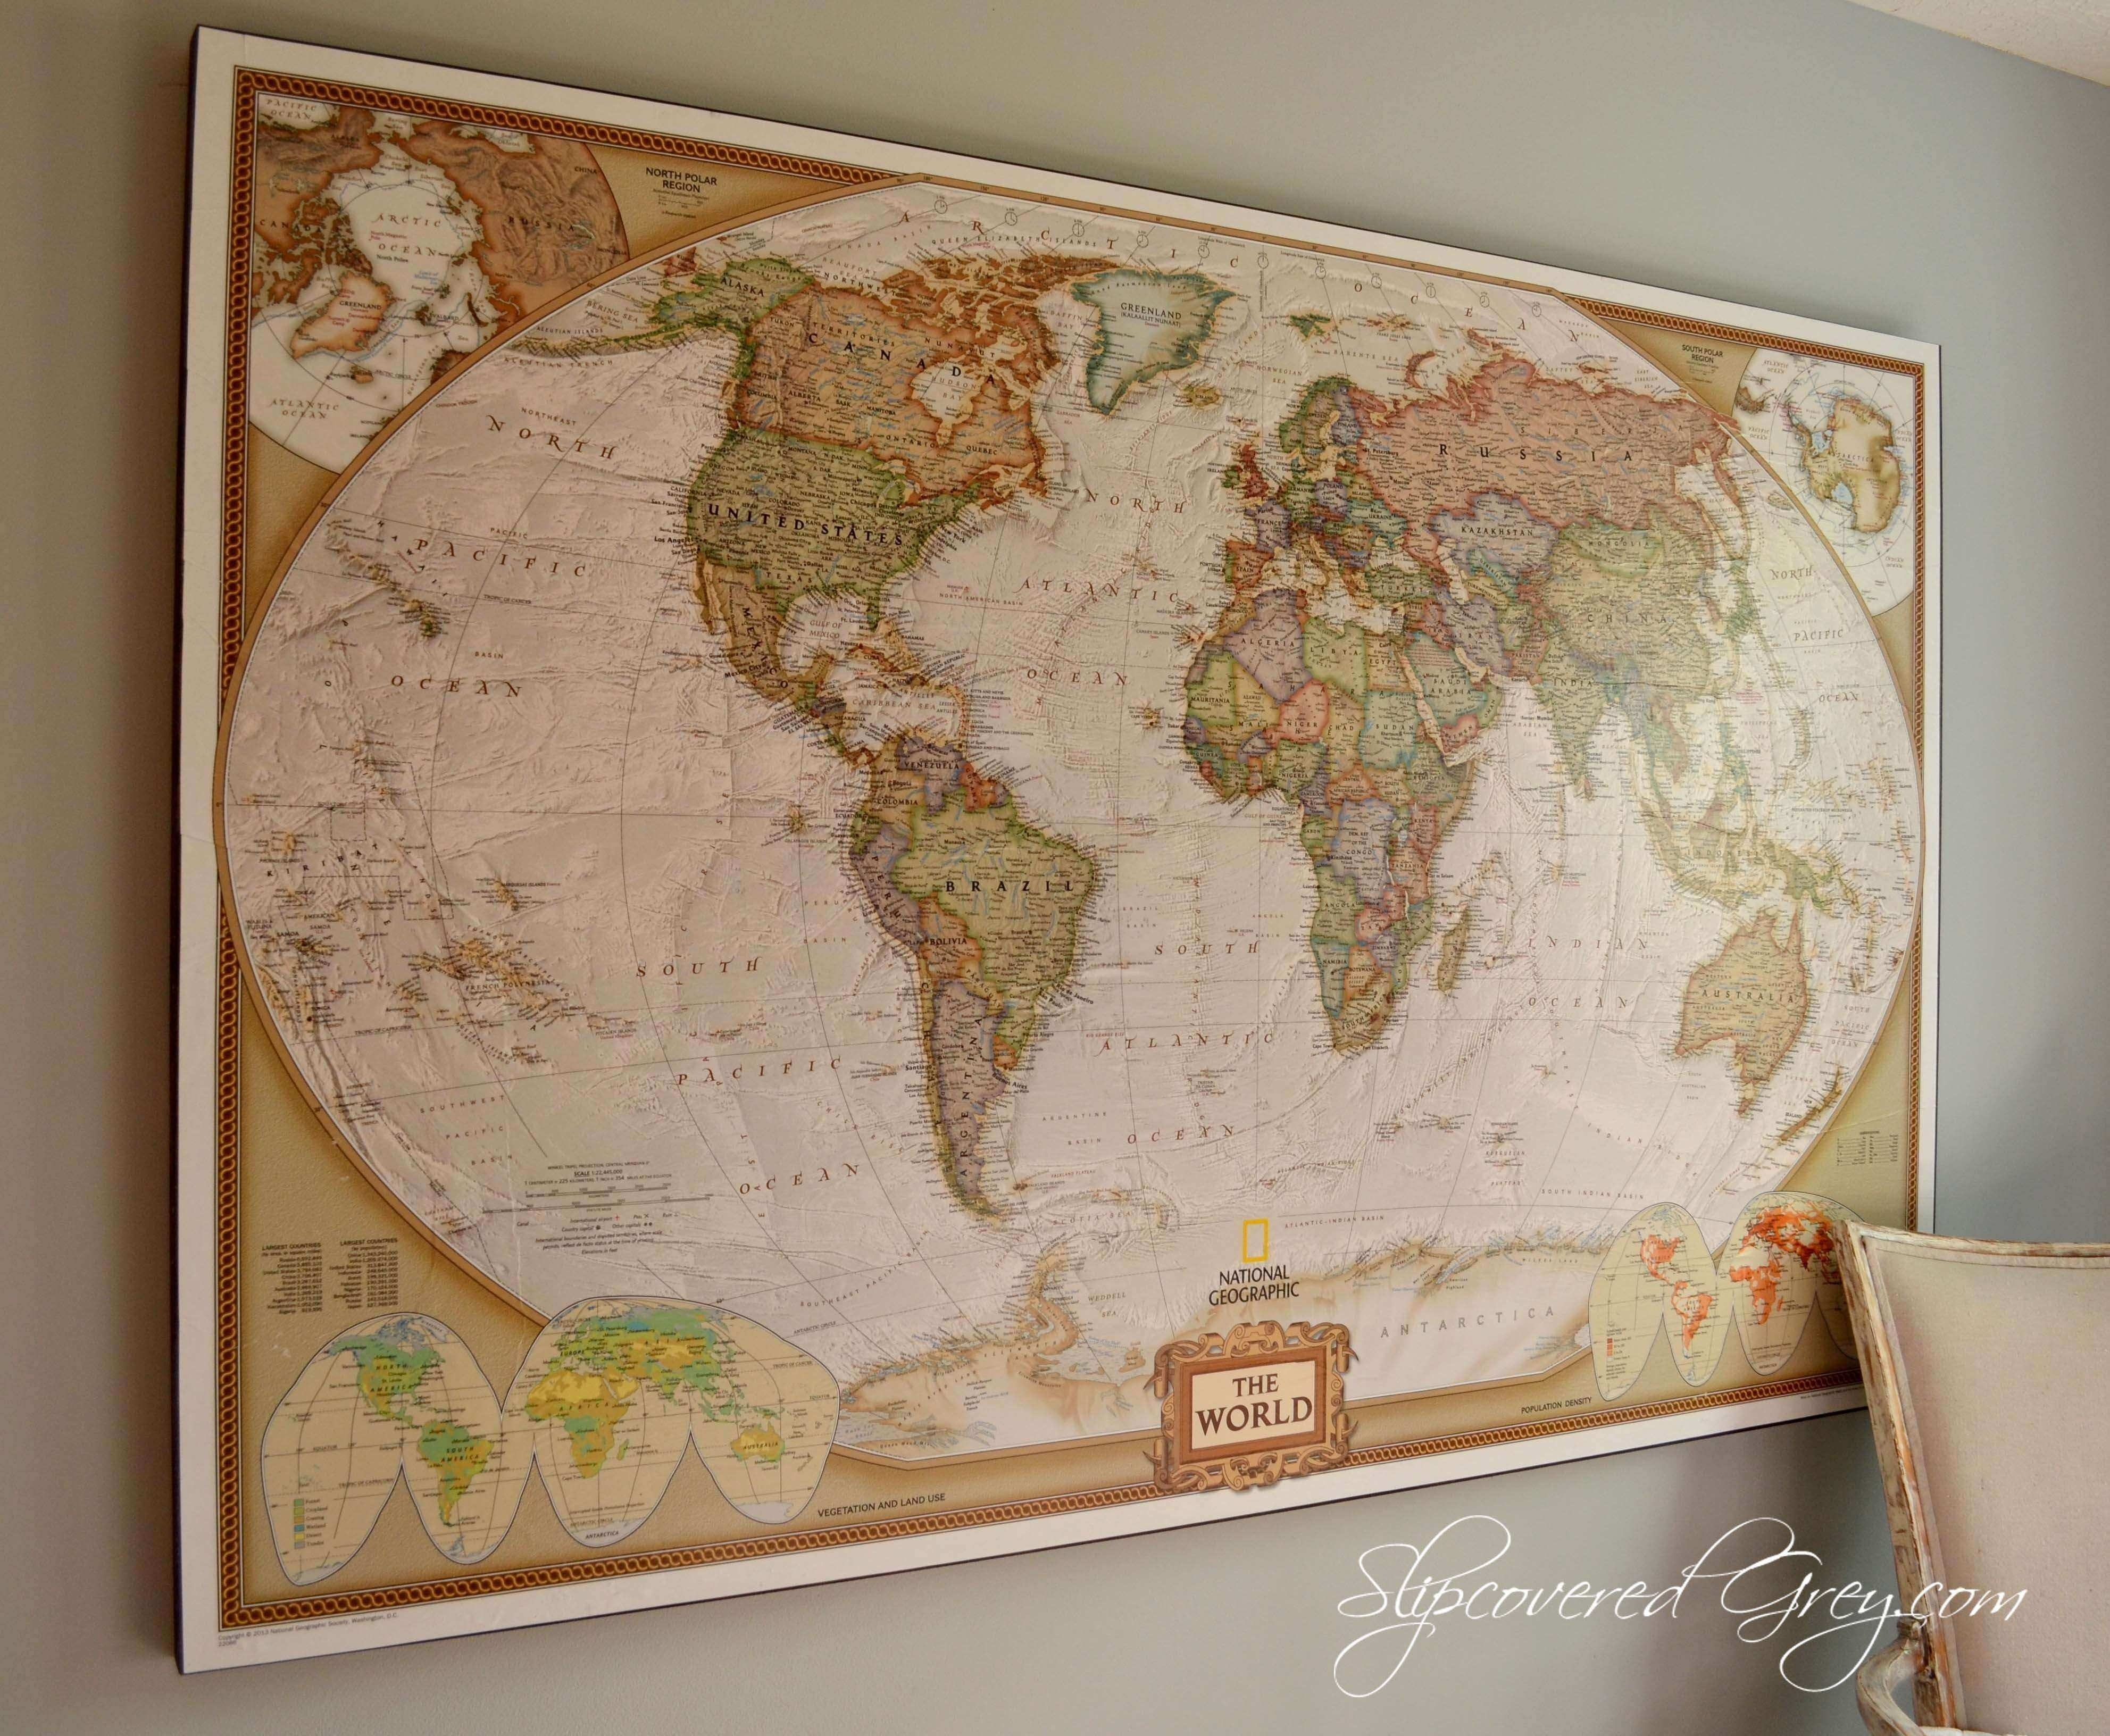 Us Map Wall Art New United States Wall Map Framed | Wall Art Ideas Throughout United States Map Wall Art (View 13 of 20)